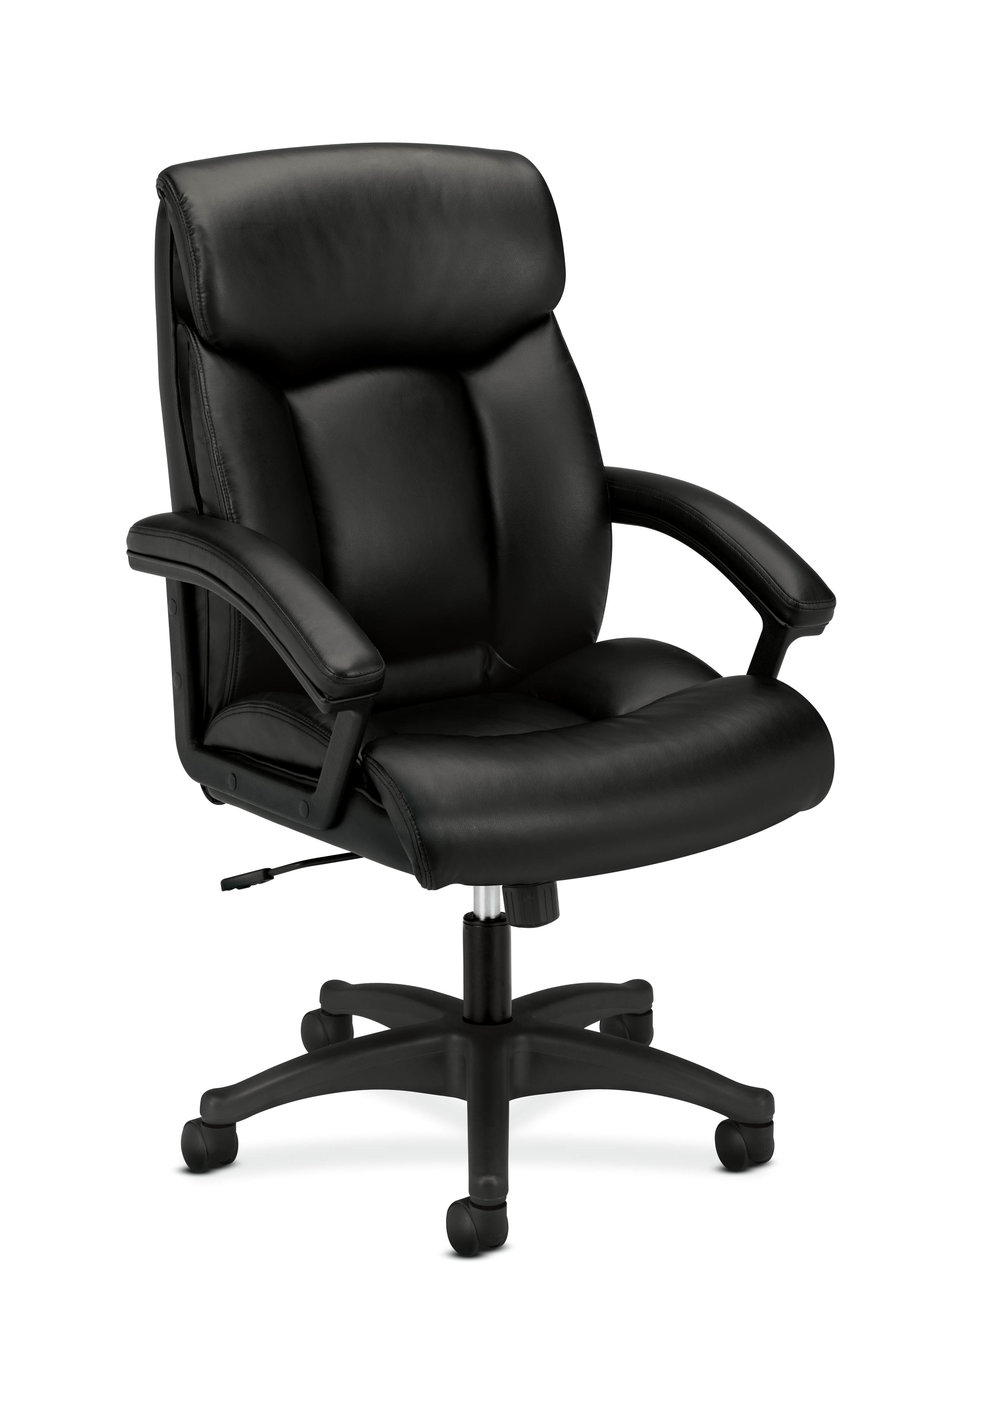 HON VL151 High-Back Chair